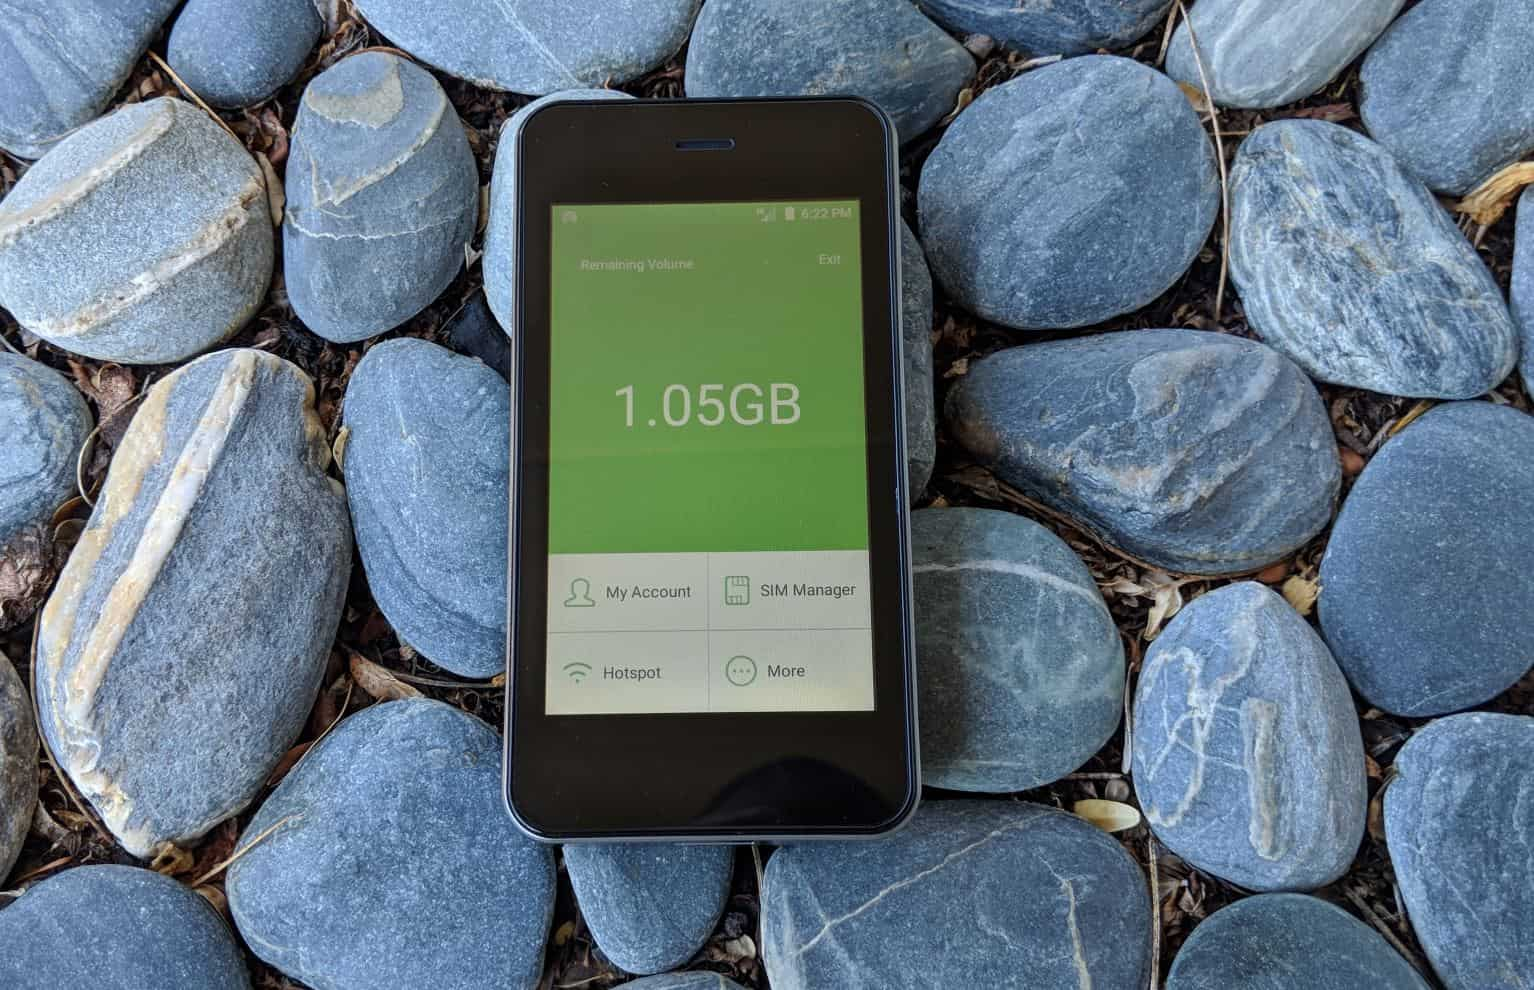 GlocalMe G3 Mobile Hotspot: An Affordable Way to Stay